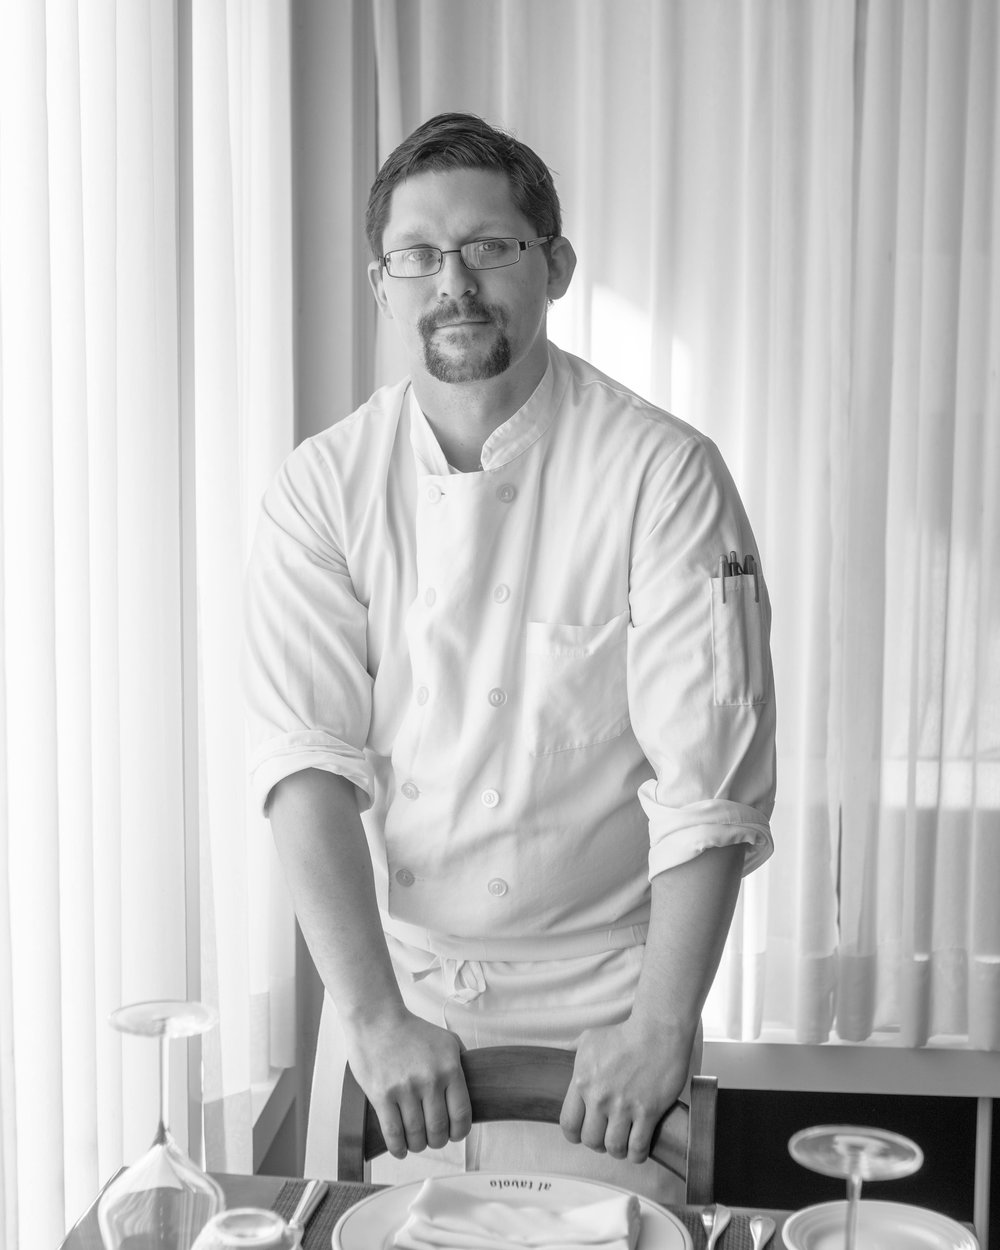 Pastry Chef James Arena Arethusa al tavolo